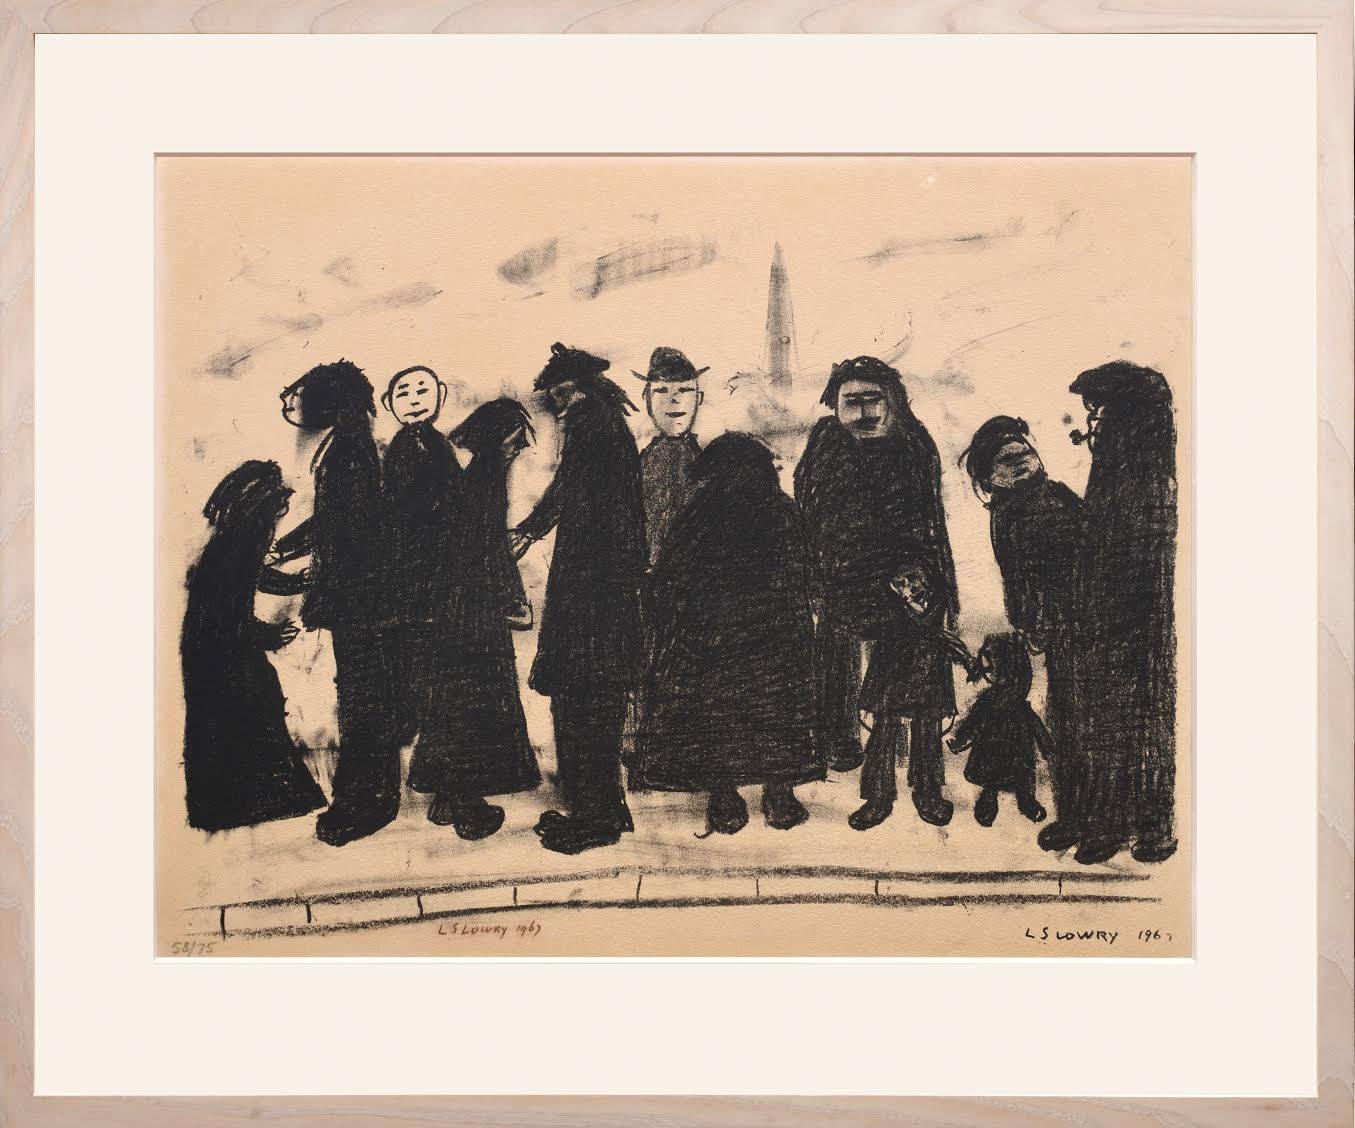 'Shapes & Sizes', L.S. Lowry, 1967-68 | Cover image:'Going to the match', L. S. Lowry, 1928